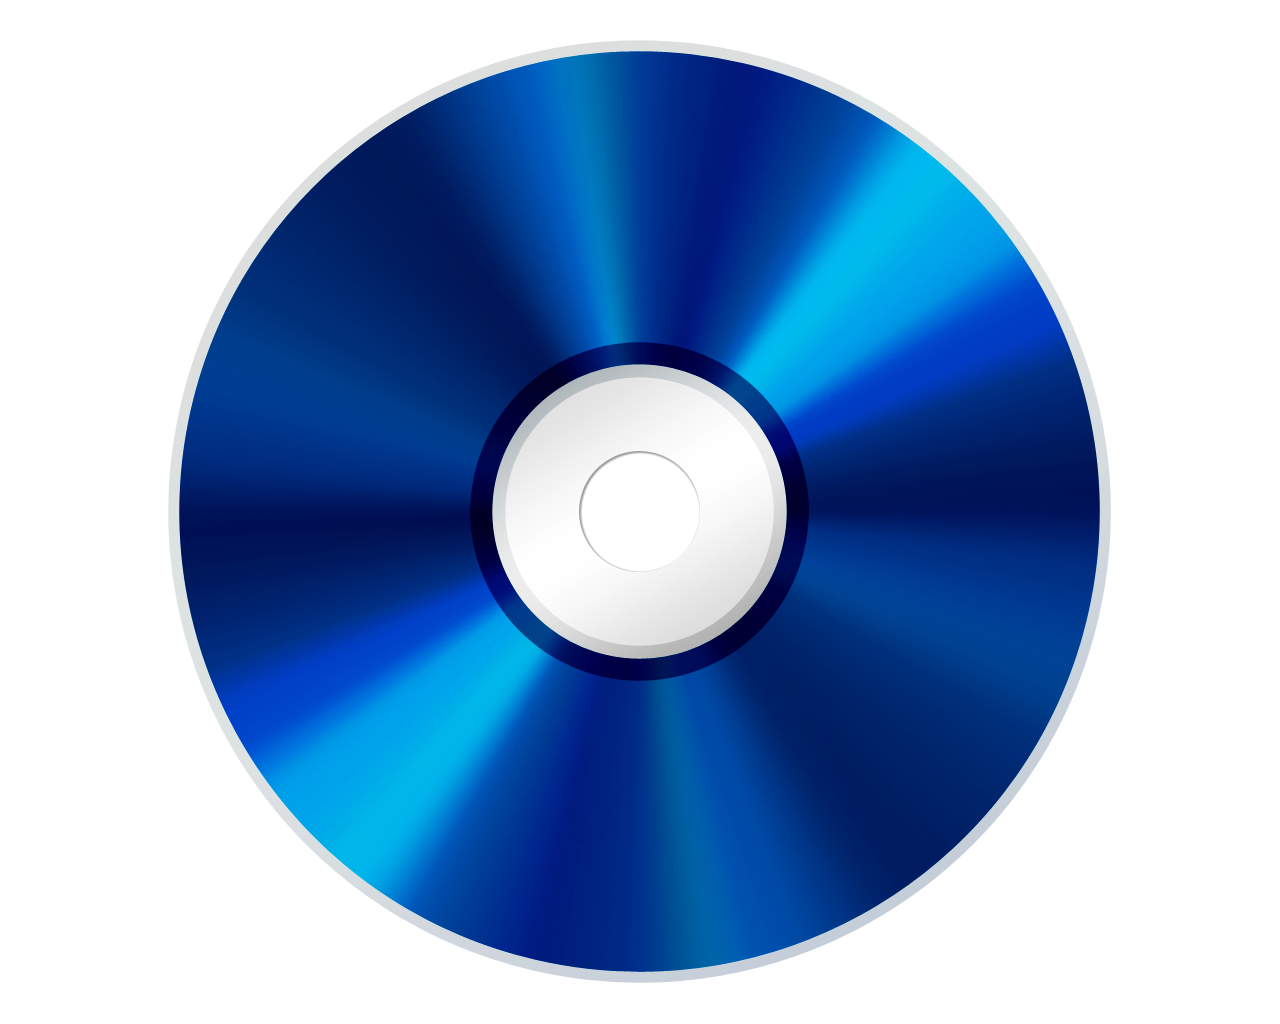 CD/DVD Clipart PNG.